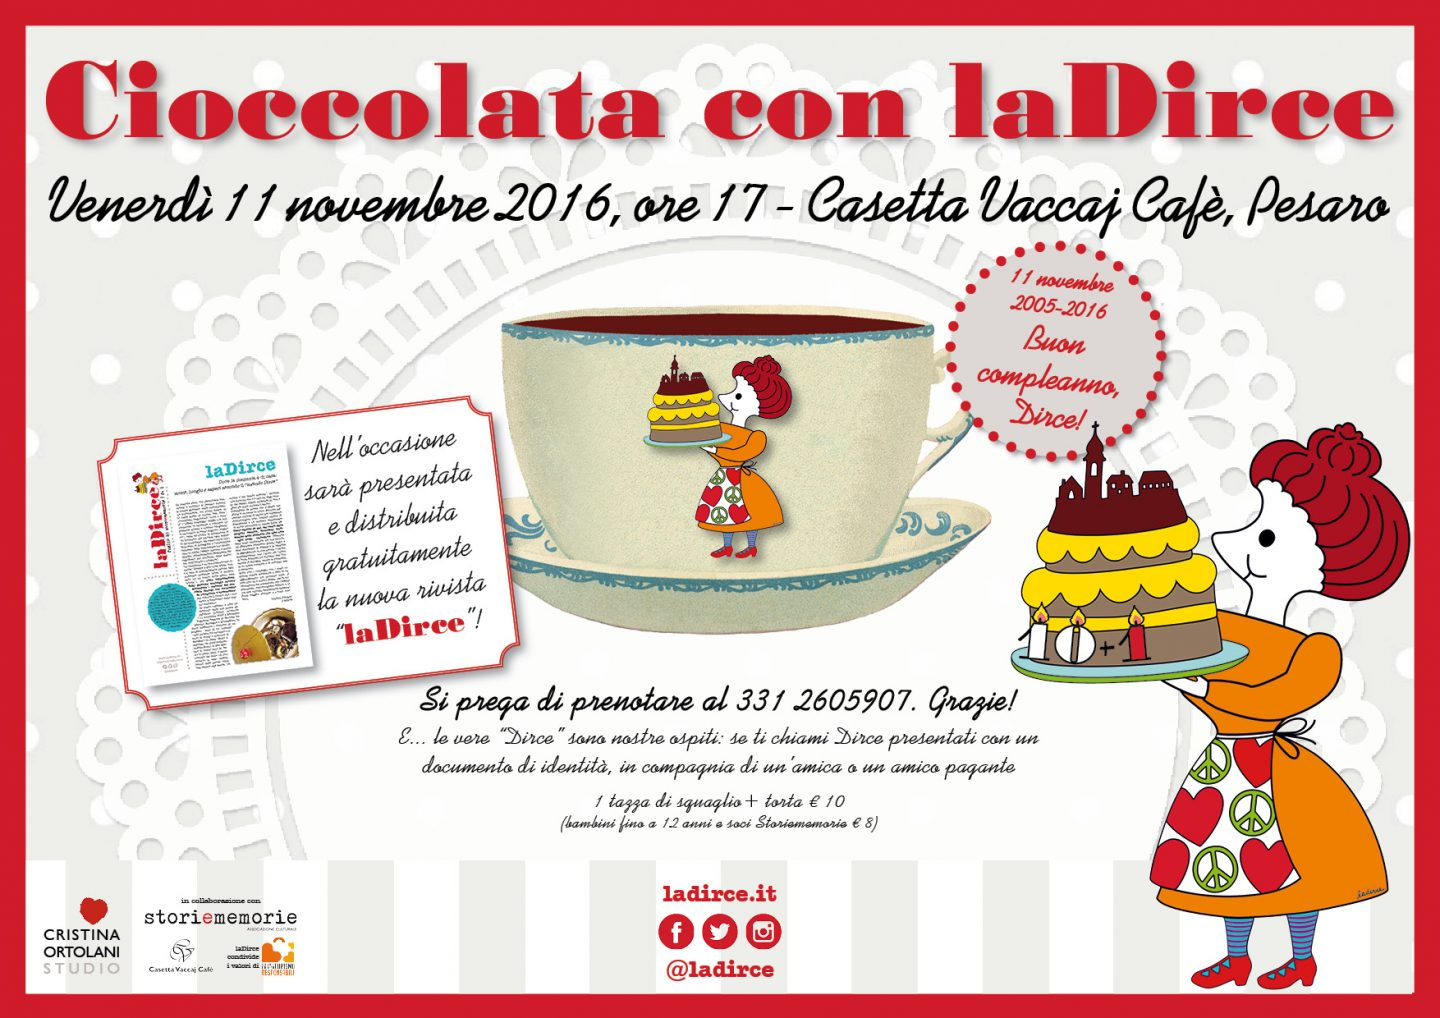 11 novembre 2016 - Cioccolata con laDirce